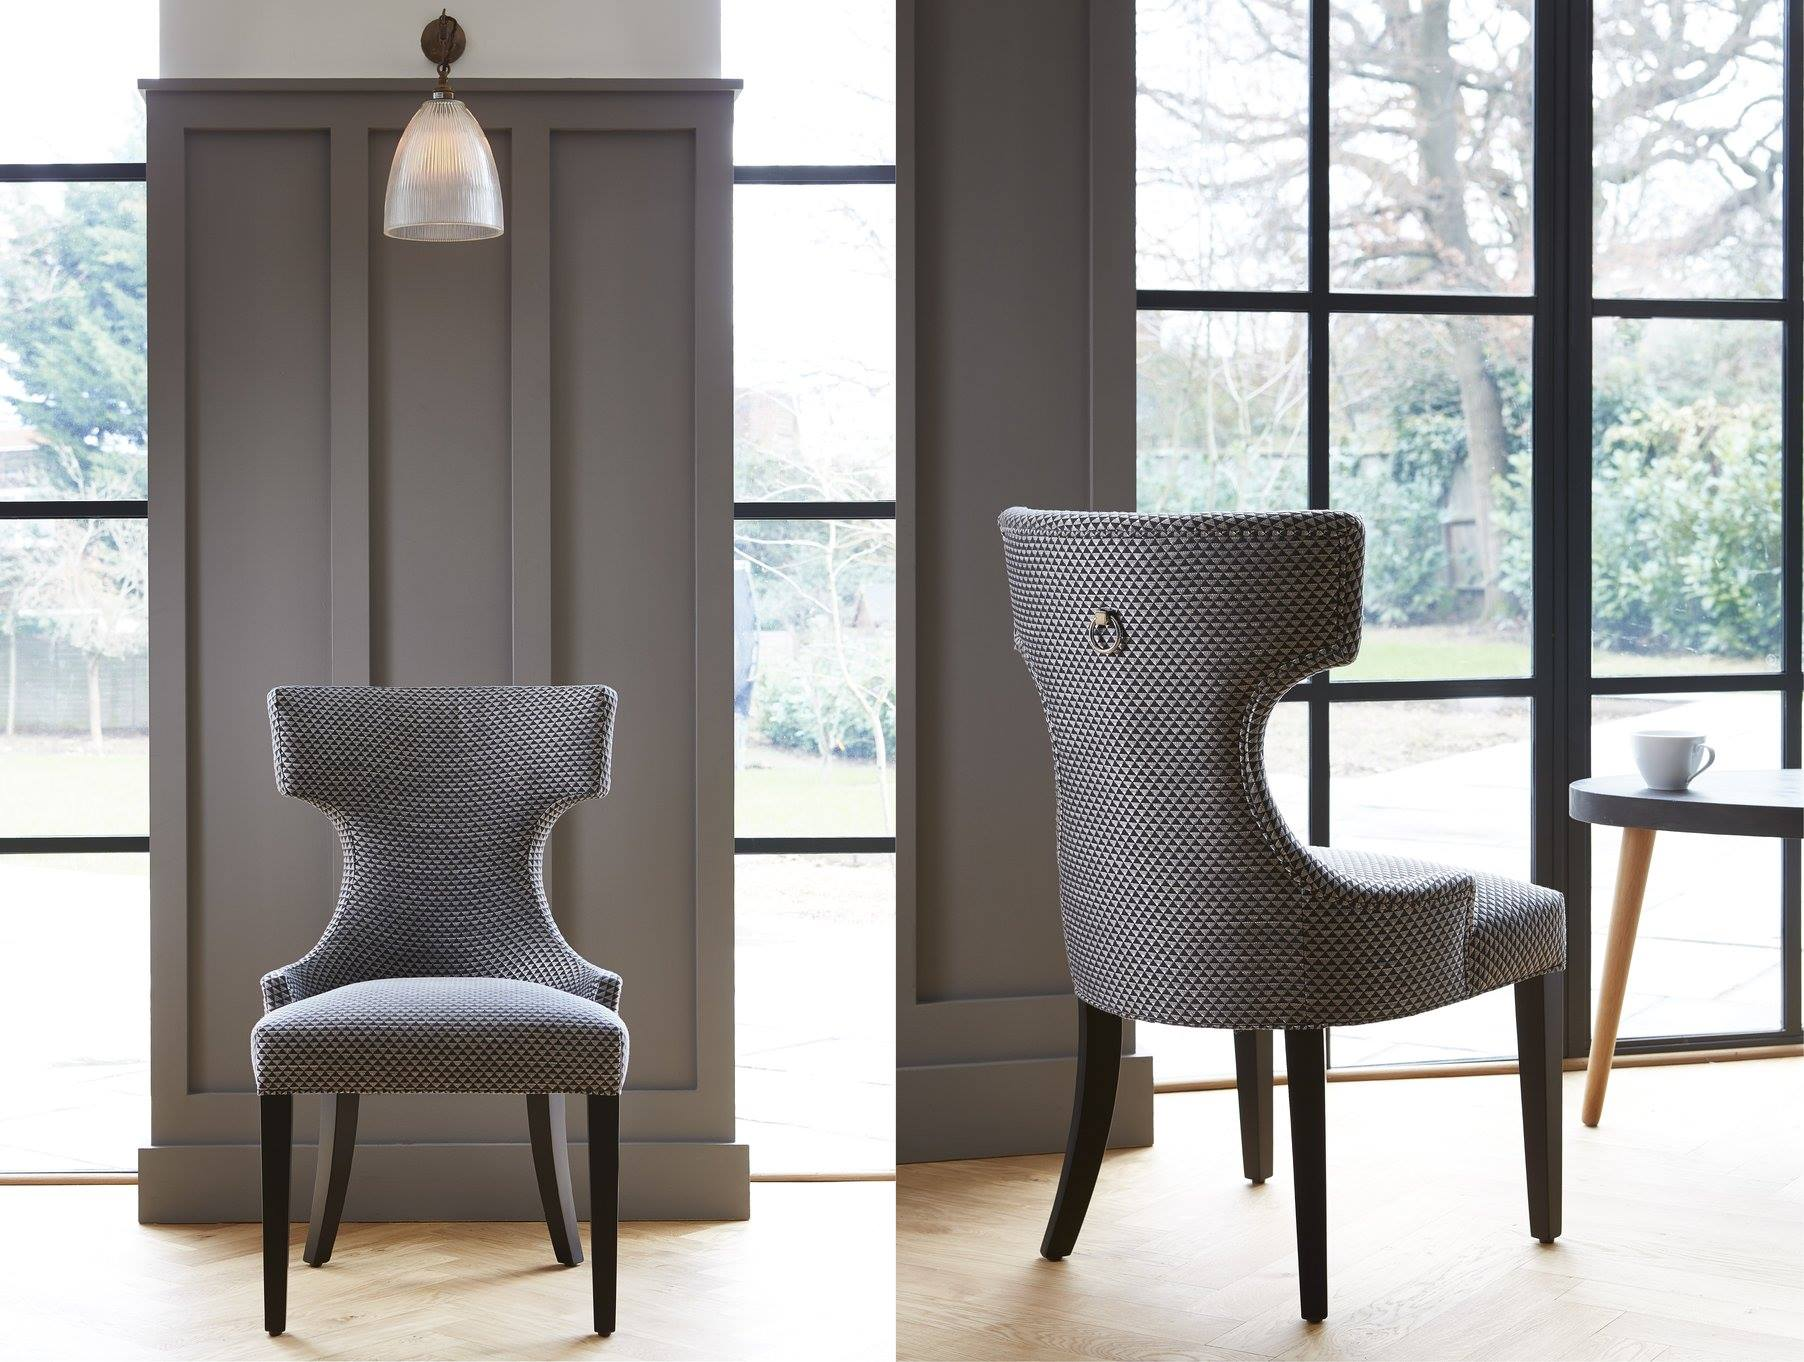 CLEARANCE CHAIRS - Sit back and relax, we have the cheapest, most luxurious chairs right here. Buy a cost-effective piece of furniture without compromising on quality.